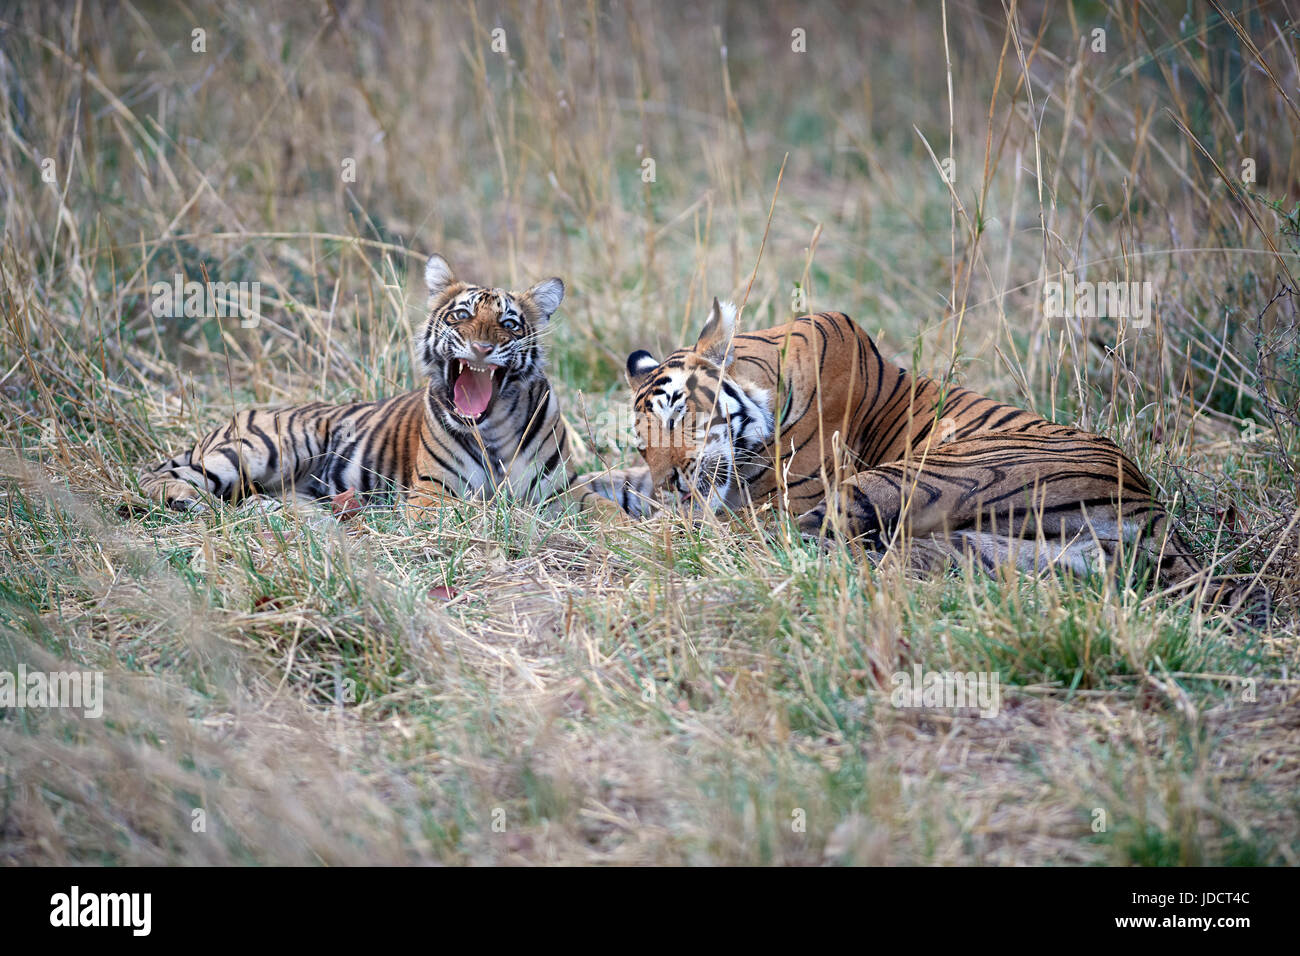 Bengal Tiger/Tigress and  cub licking each other. - Stock Image